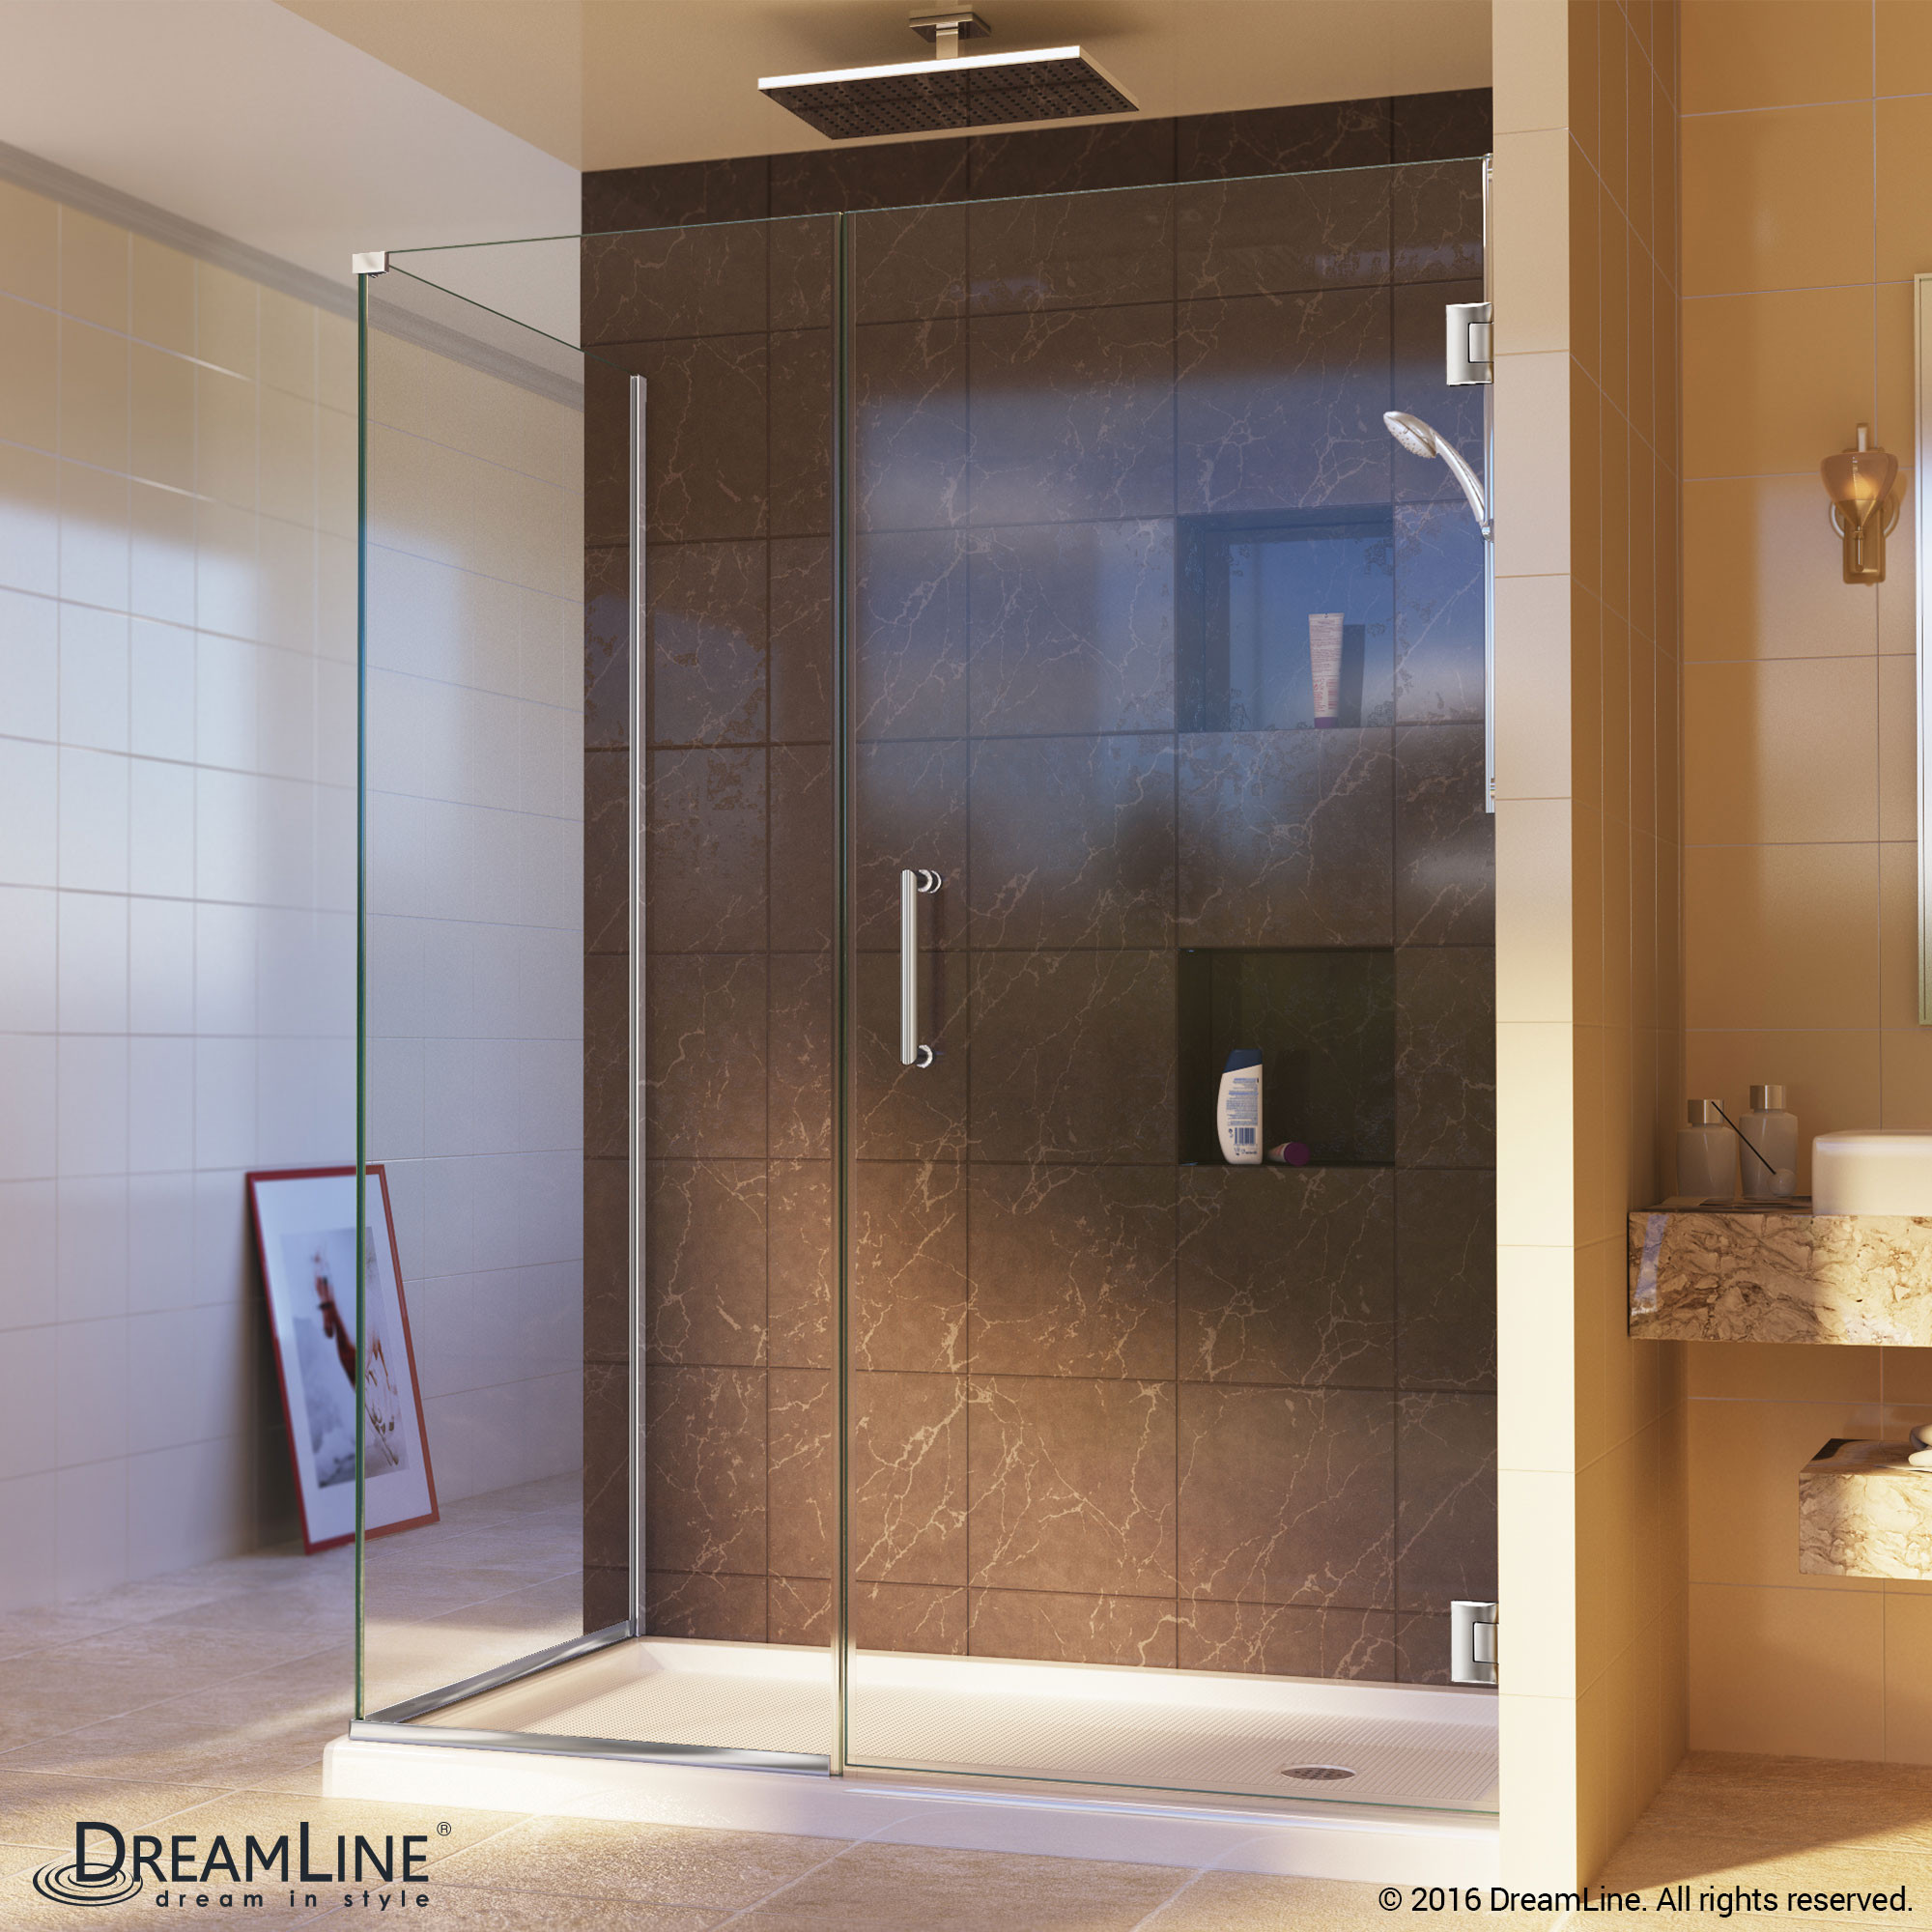 DreamLine SHEN-24475300-01 Unidoor Plus Hinged Shower Enclosure In Chrome Finish Hardware